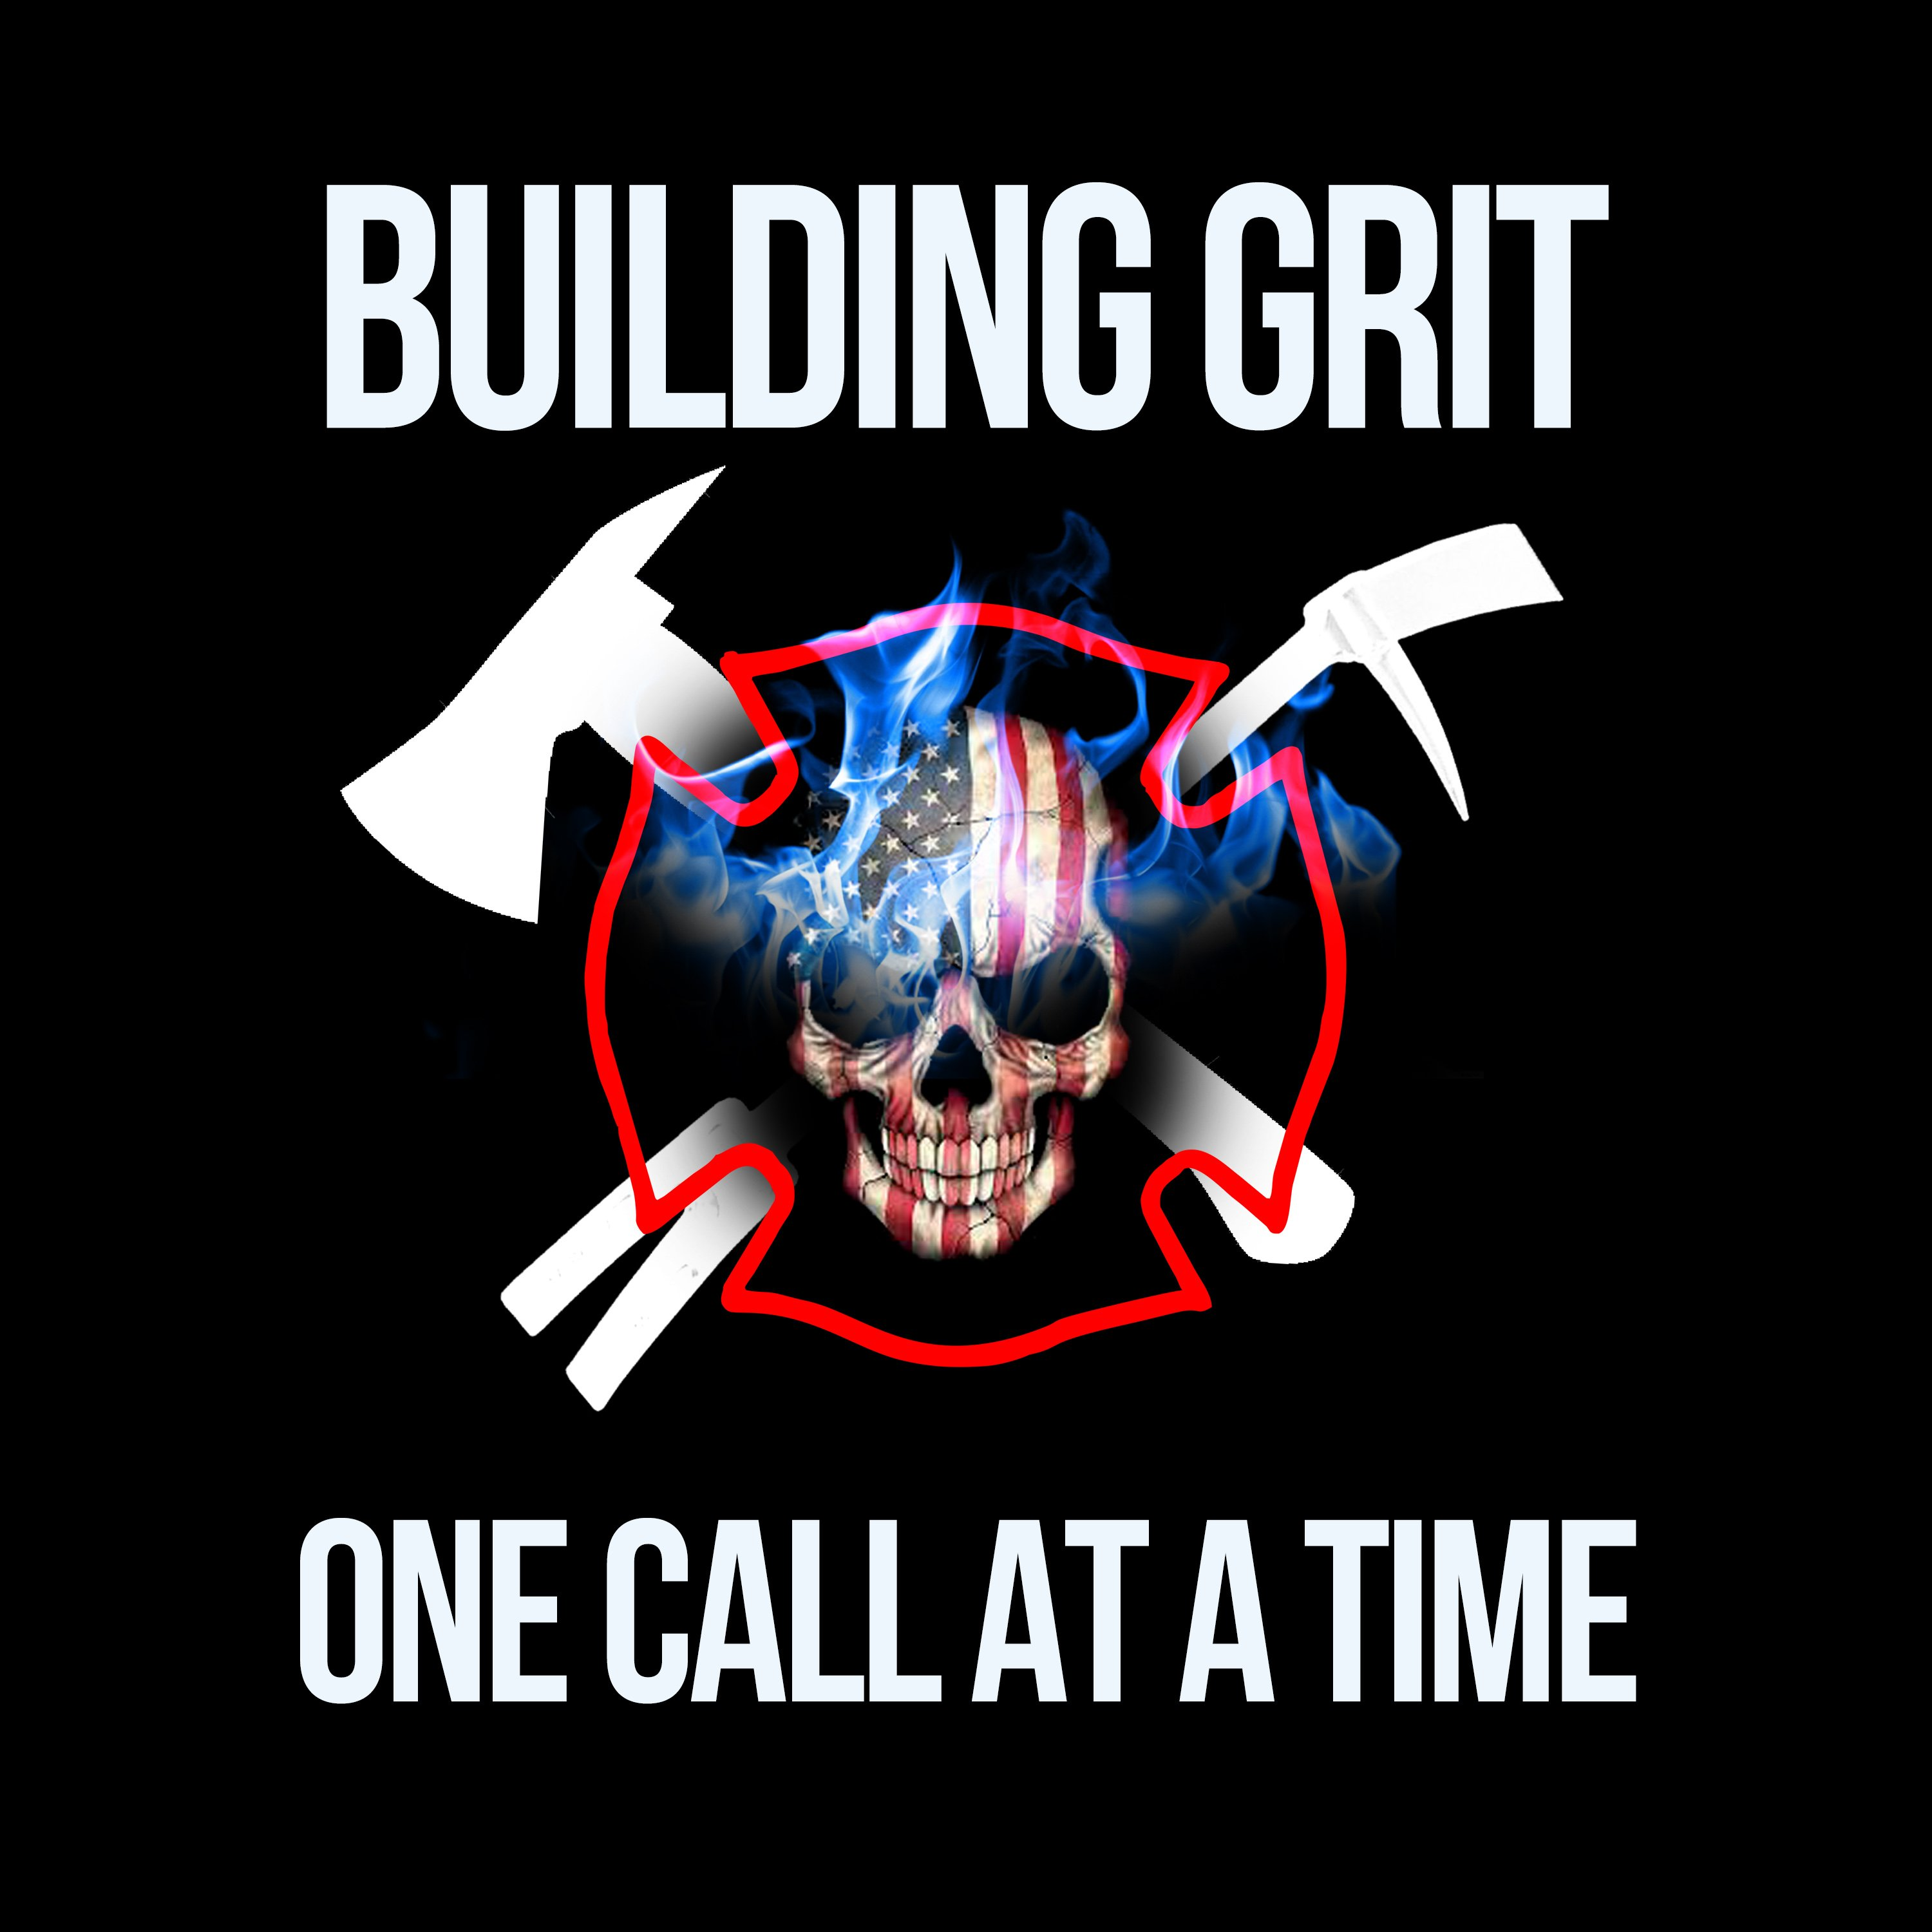 Building Grit One Call At A Time